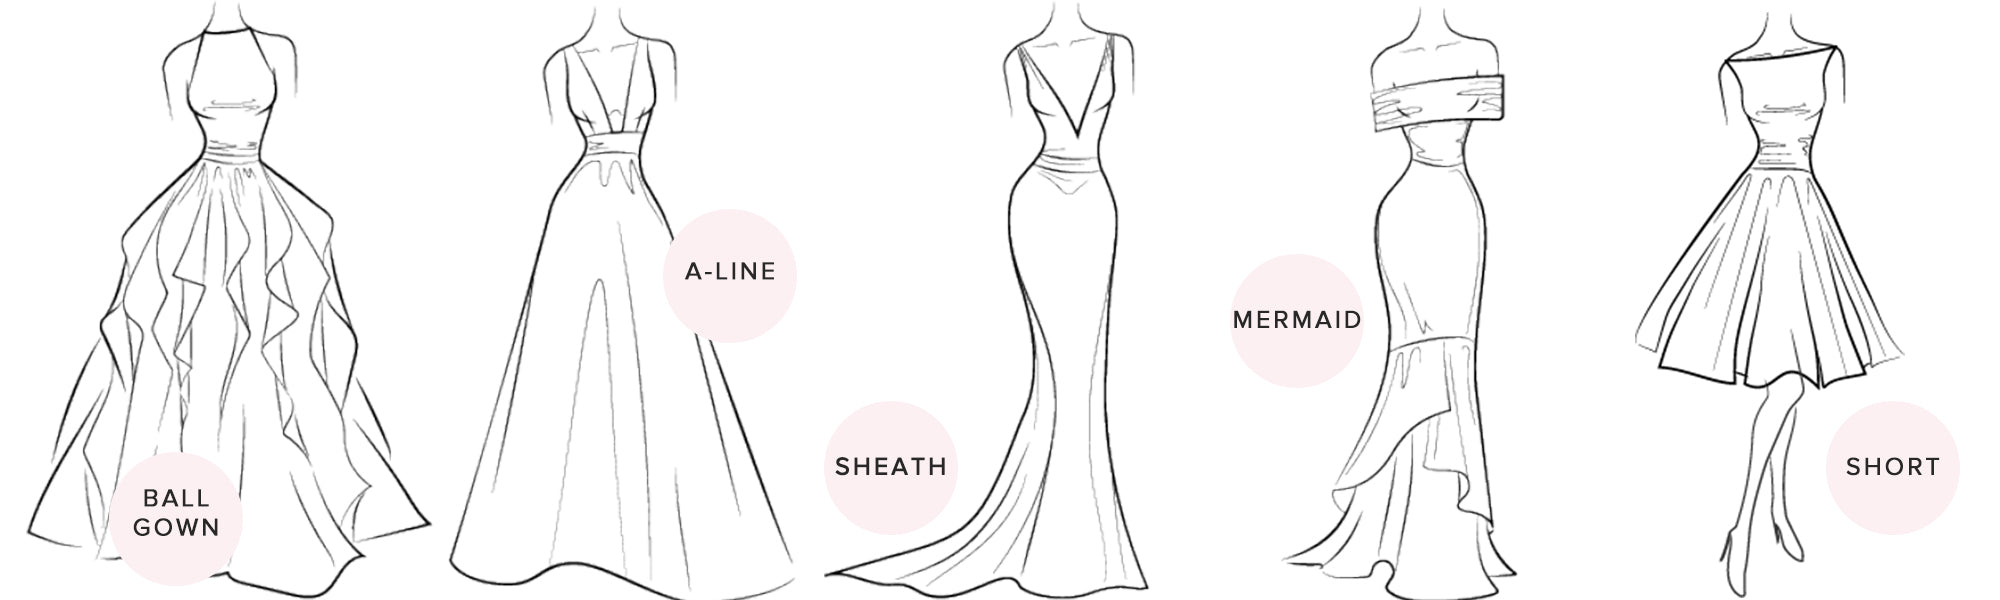 How To Pick Your Dream Wedding Dress Oleg Cassini